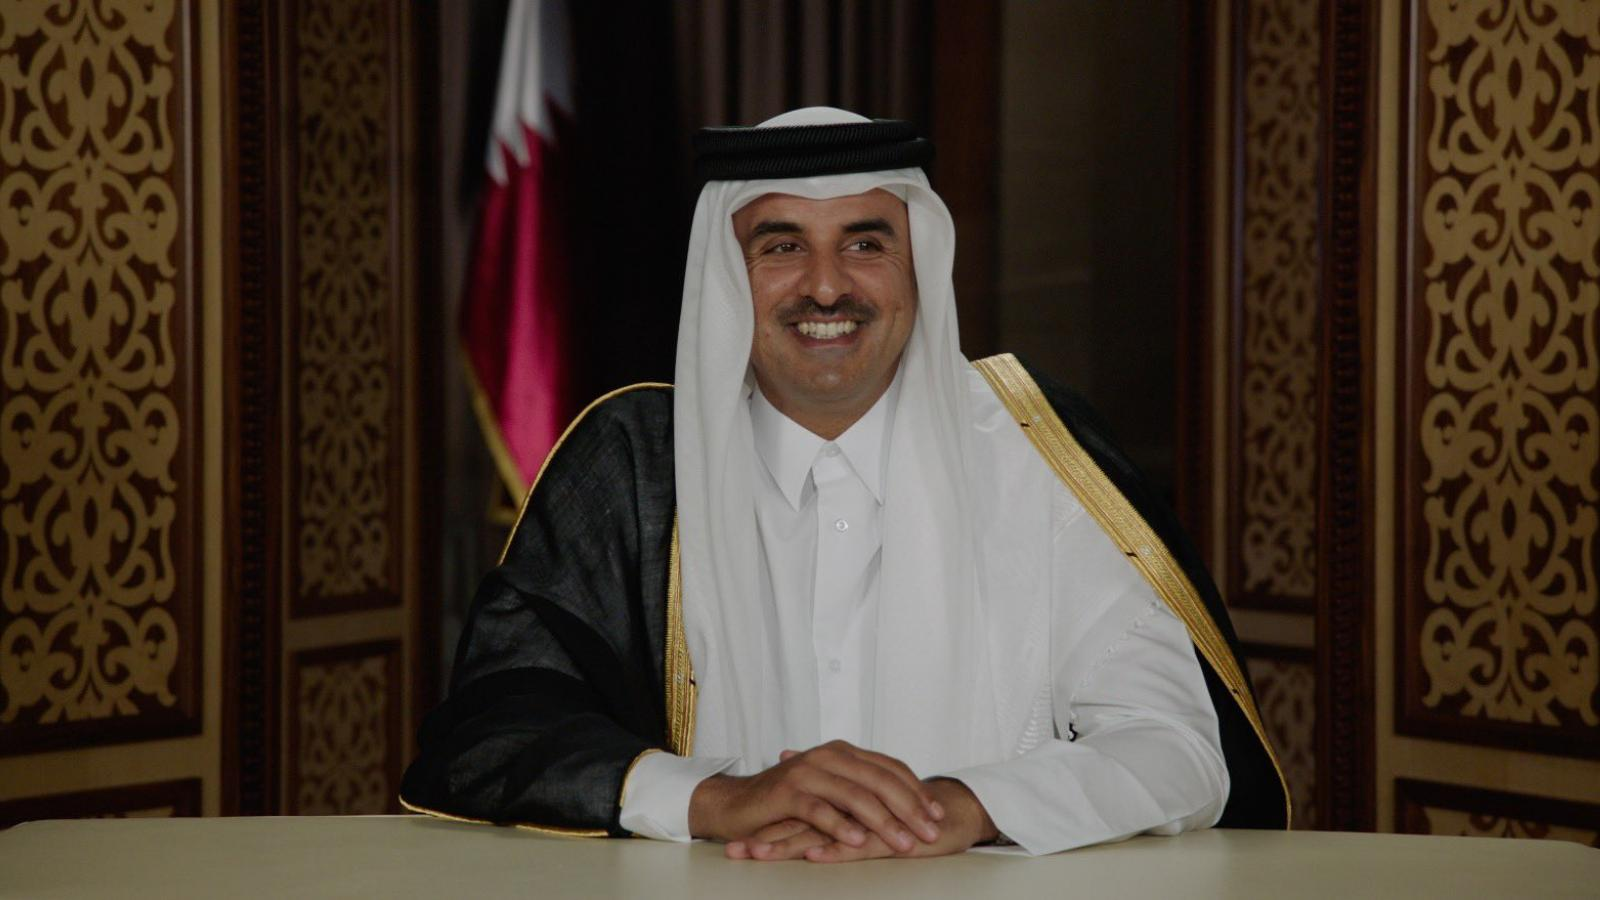 WATCH: HH The Amir addresses nation in special Ramadan message